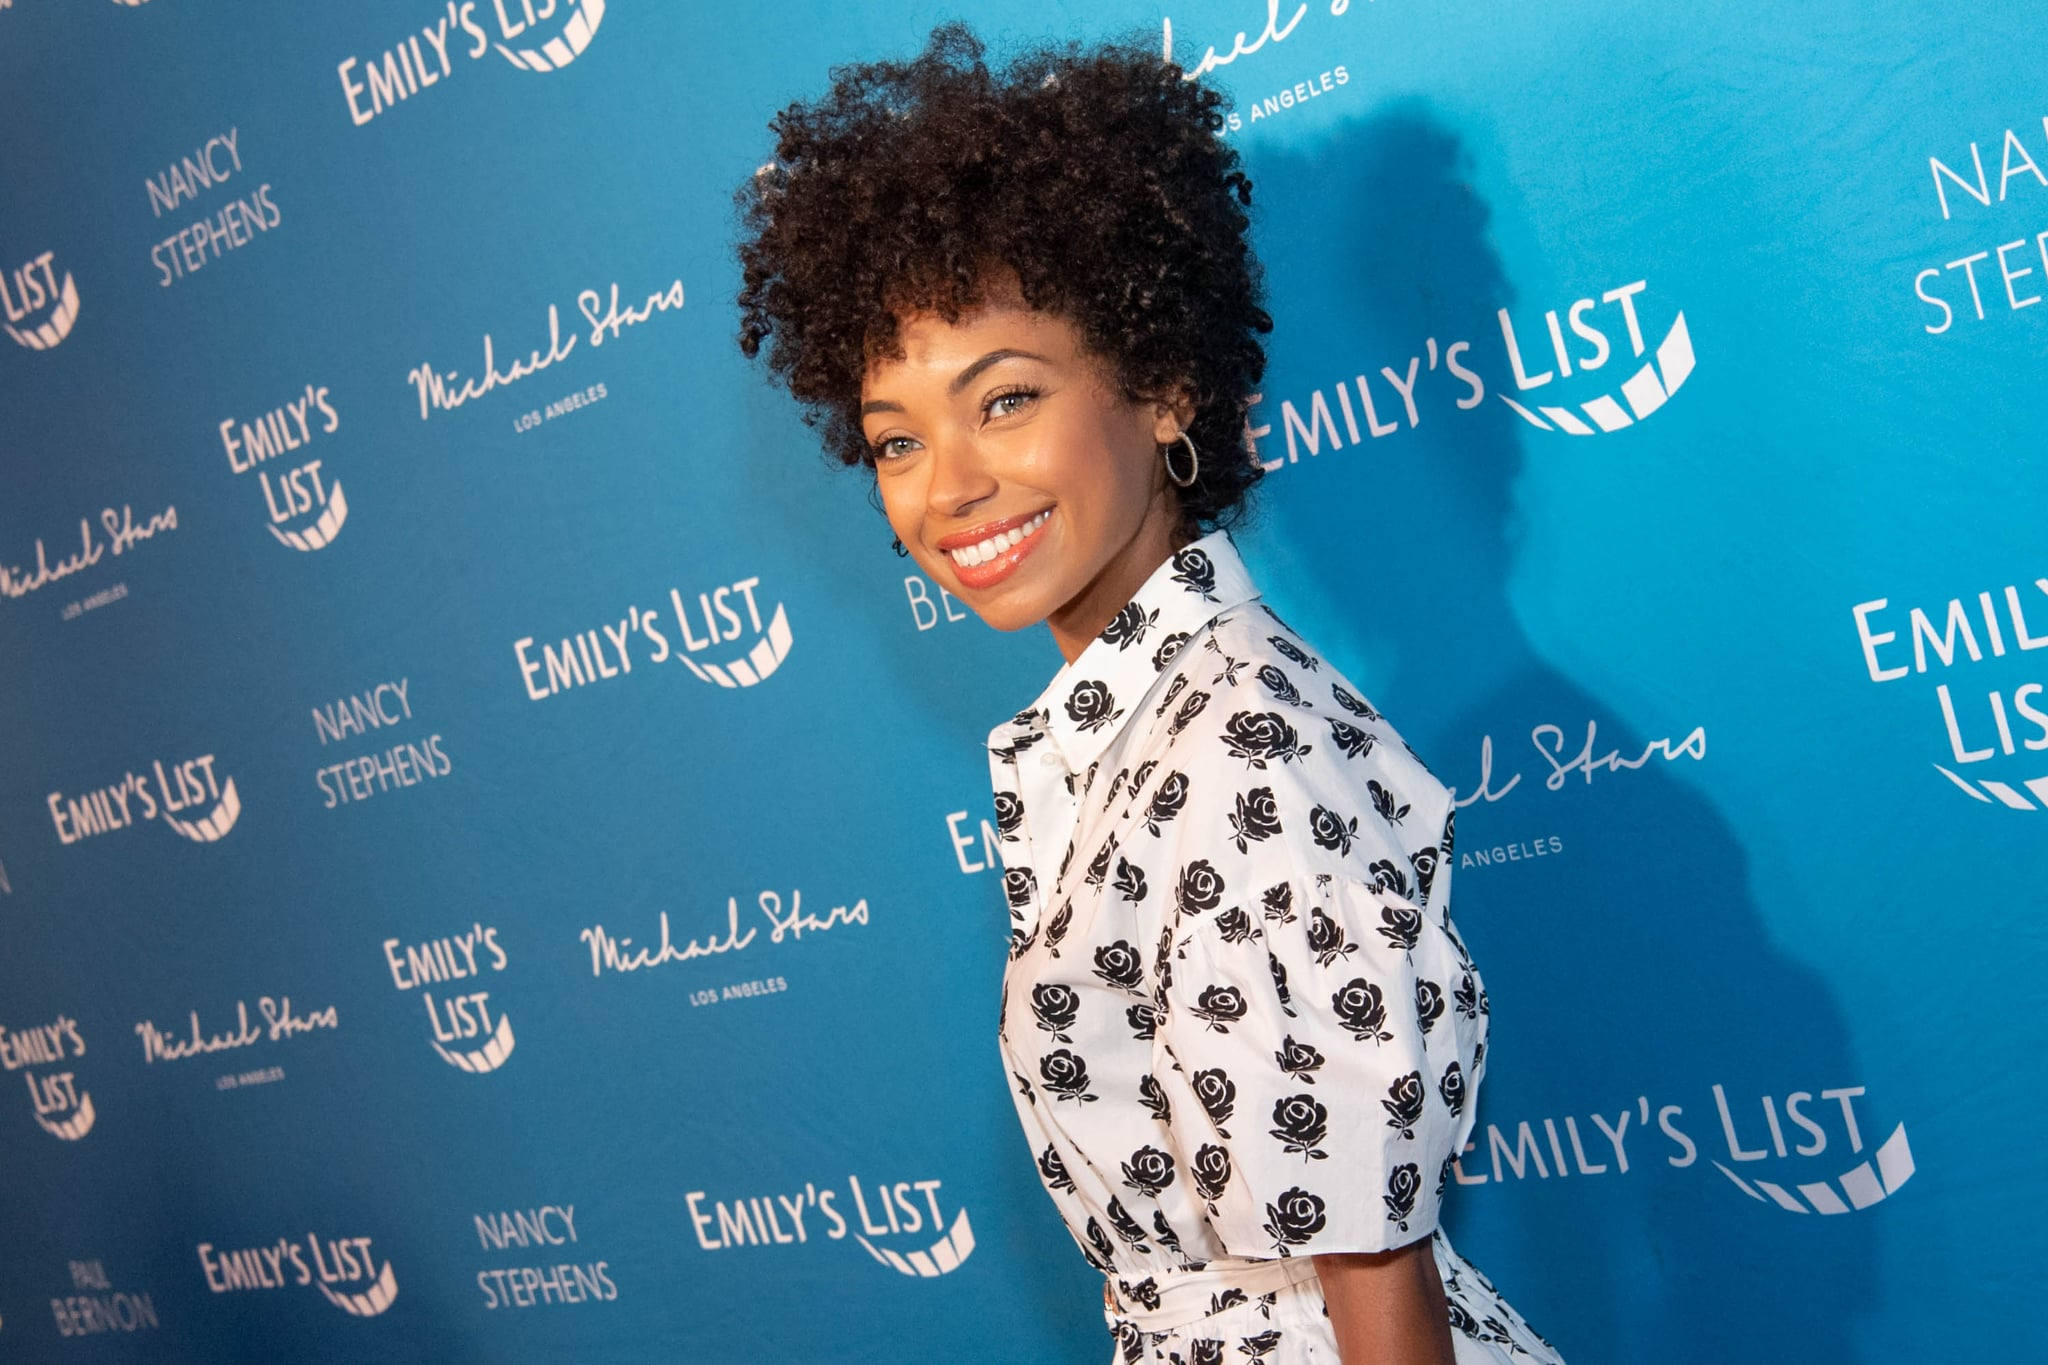 LOS ANGELES, CALIFORNIA - FEBRUARY 04: Logan Browning arrives at Emily's List 3rd annual pre-oscars event at Four Seasons Hotel Los Angeles at Beverly Hills on February 04, 2020 in Los Angeles, California. (Photo by Emma McIntyre/WireImage)